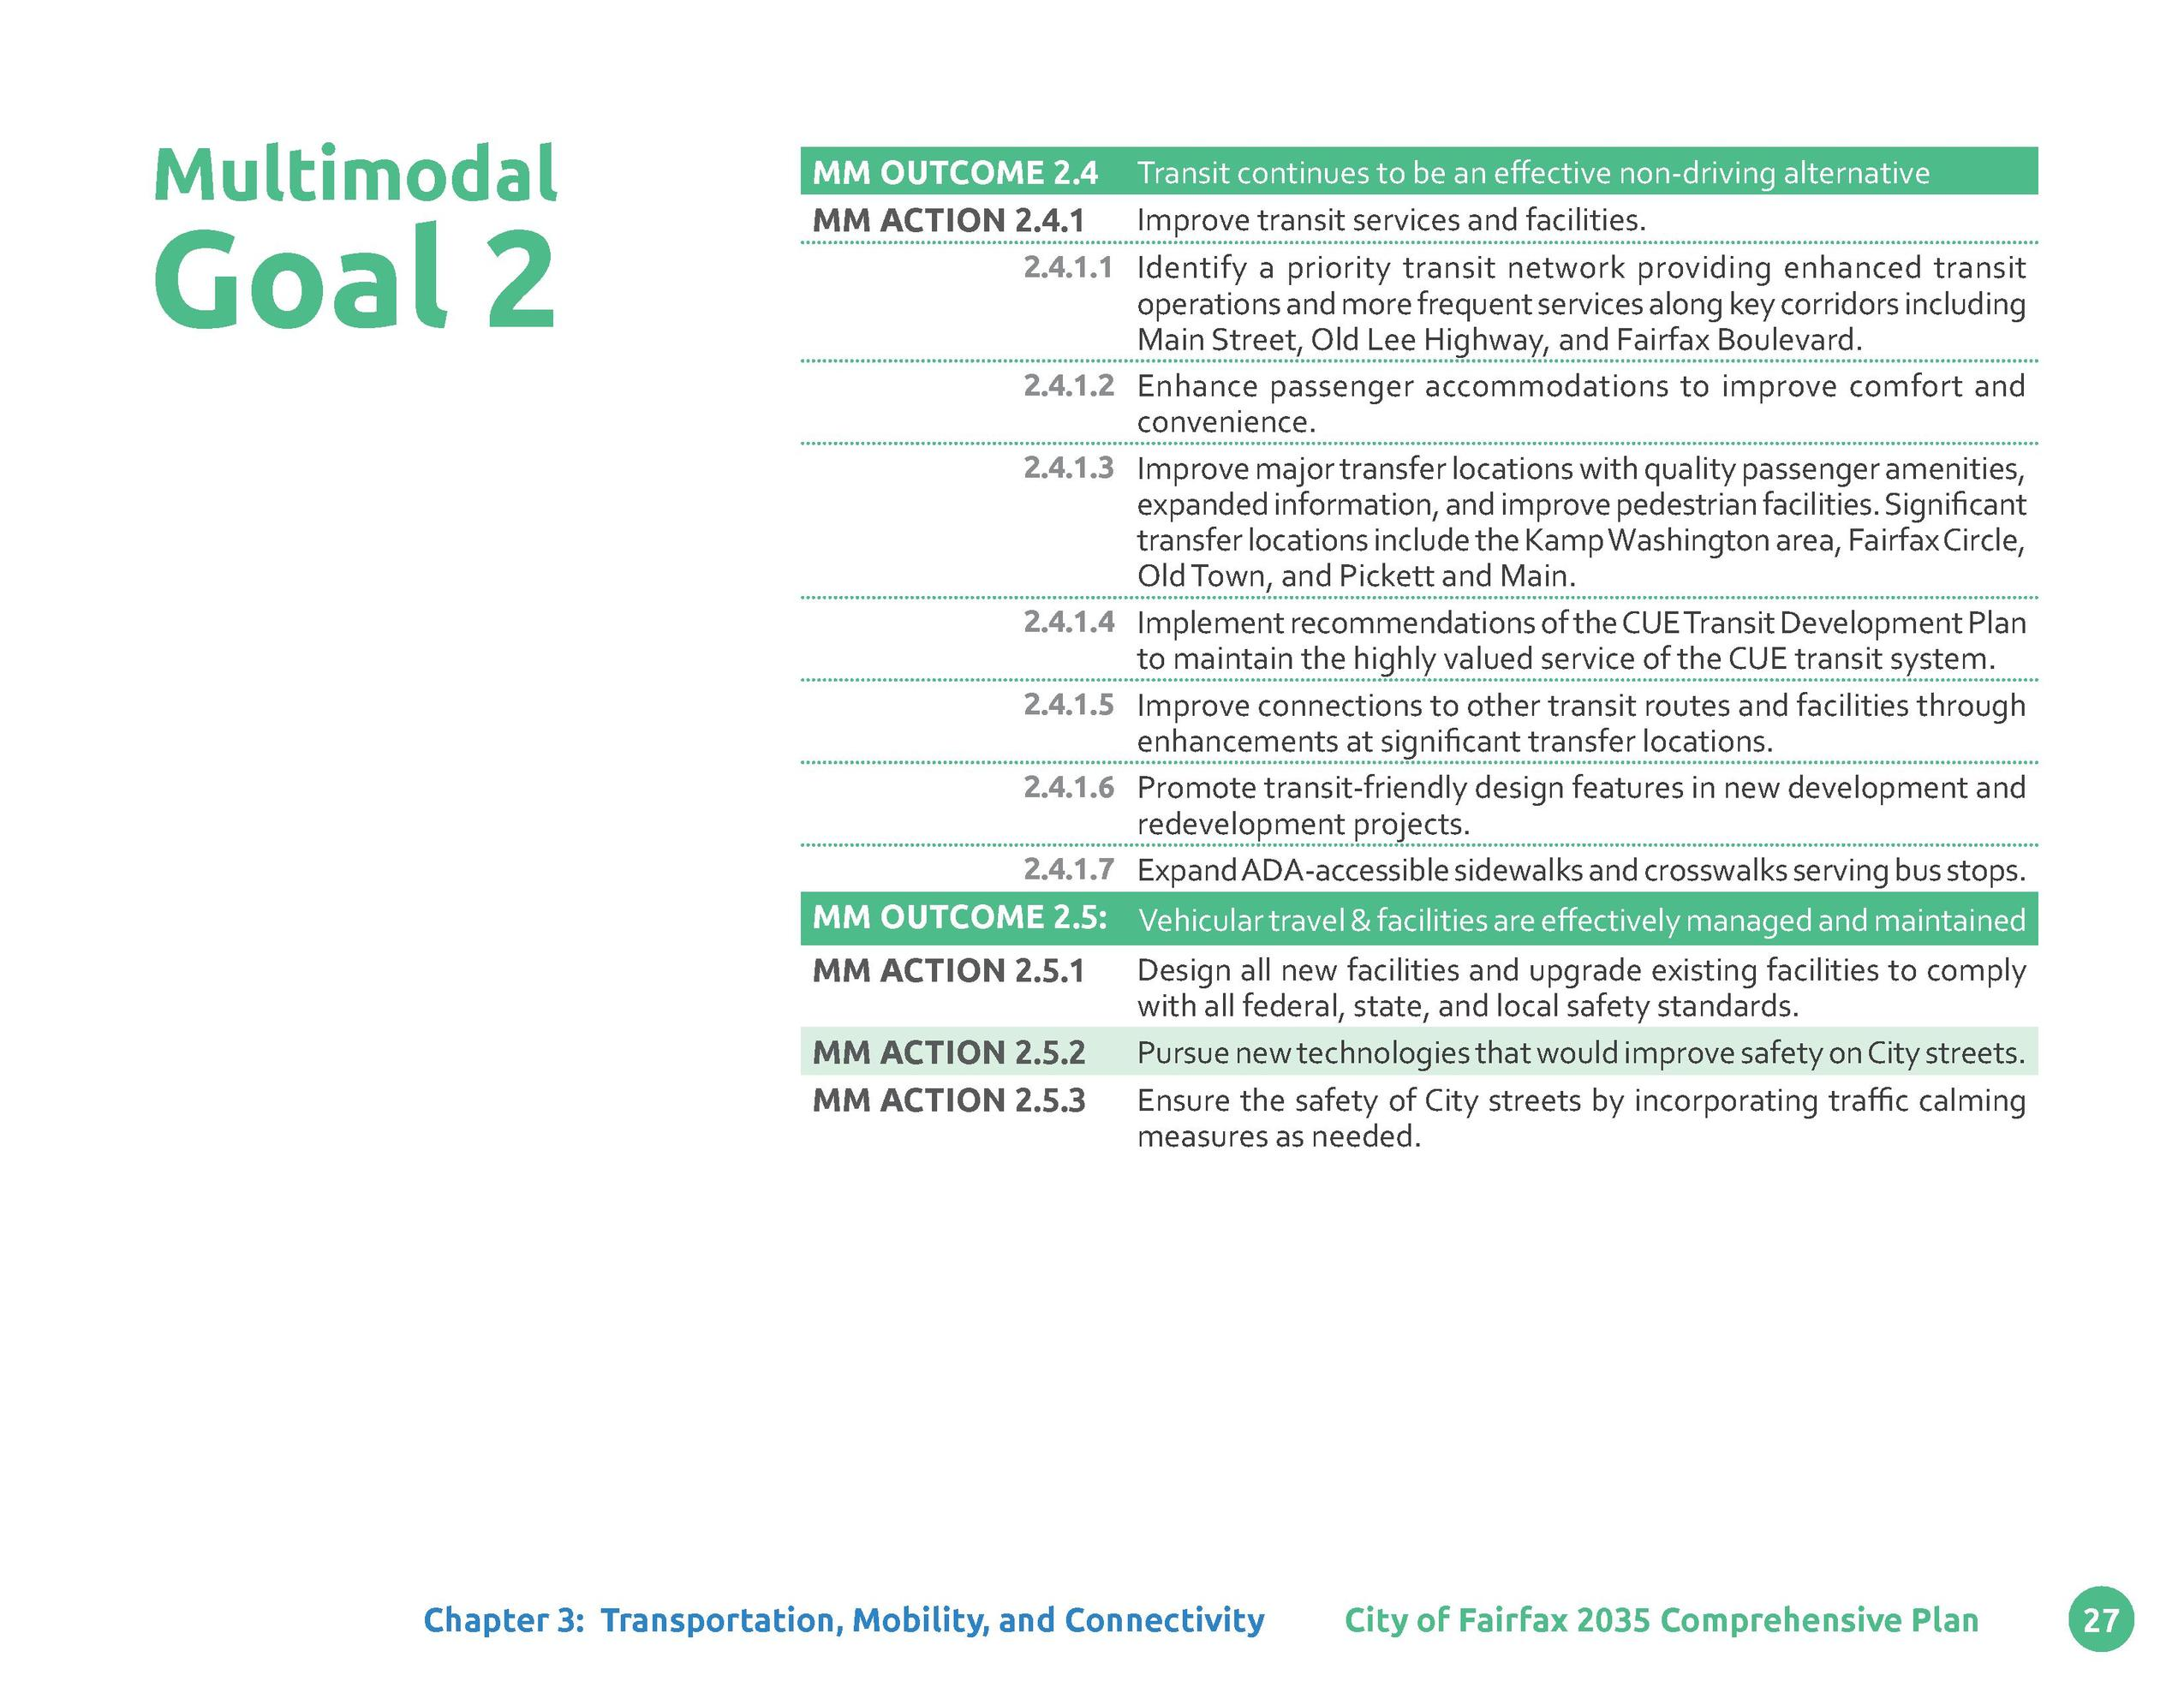 Multimodal  Goal 2  MM OUTCOME 2.4 MM ACTION 2.4.1 2.4.1.1  2.4.1.2 2.4.1.3  2.4.1.4 2.4.1.5 2.4.1.6 2.4.1.7  Transit cont...